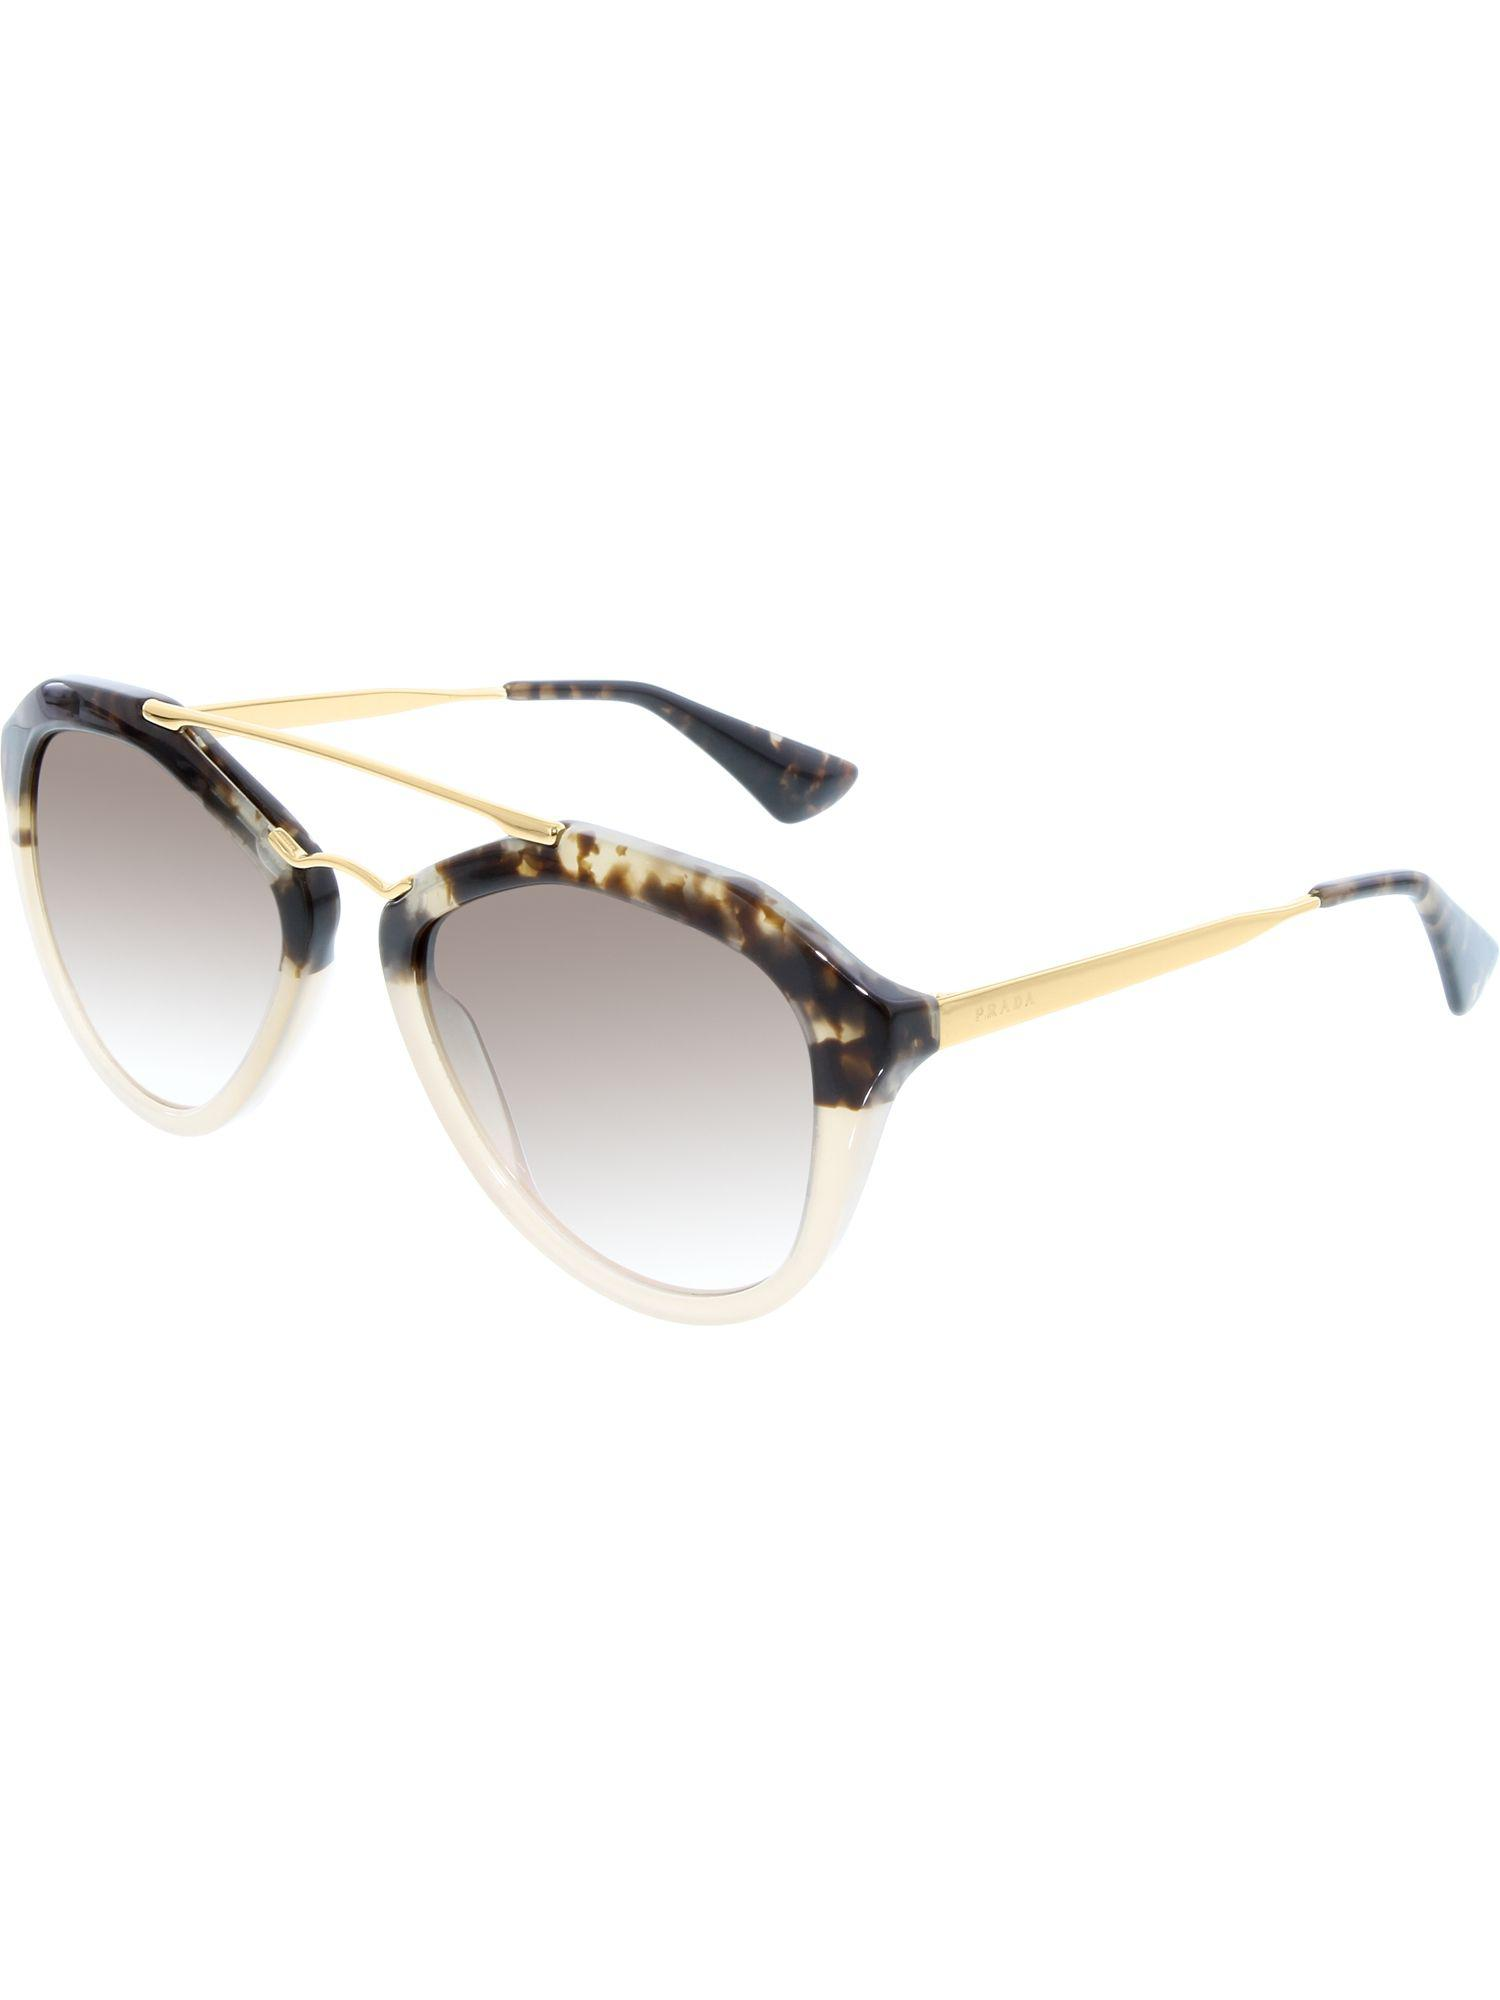 0c73d2c7c4 Prada. Women s Gradient Pr12qs-roz0a6-54 Brown Aviator Sunglasses